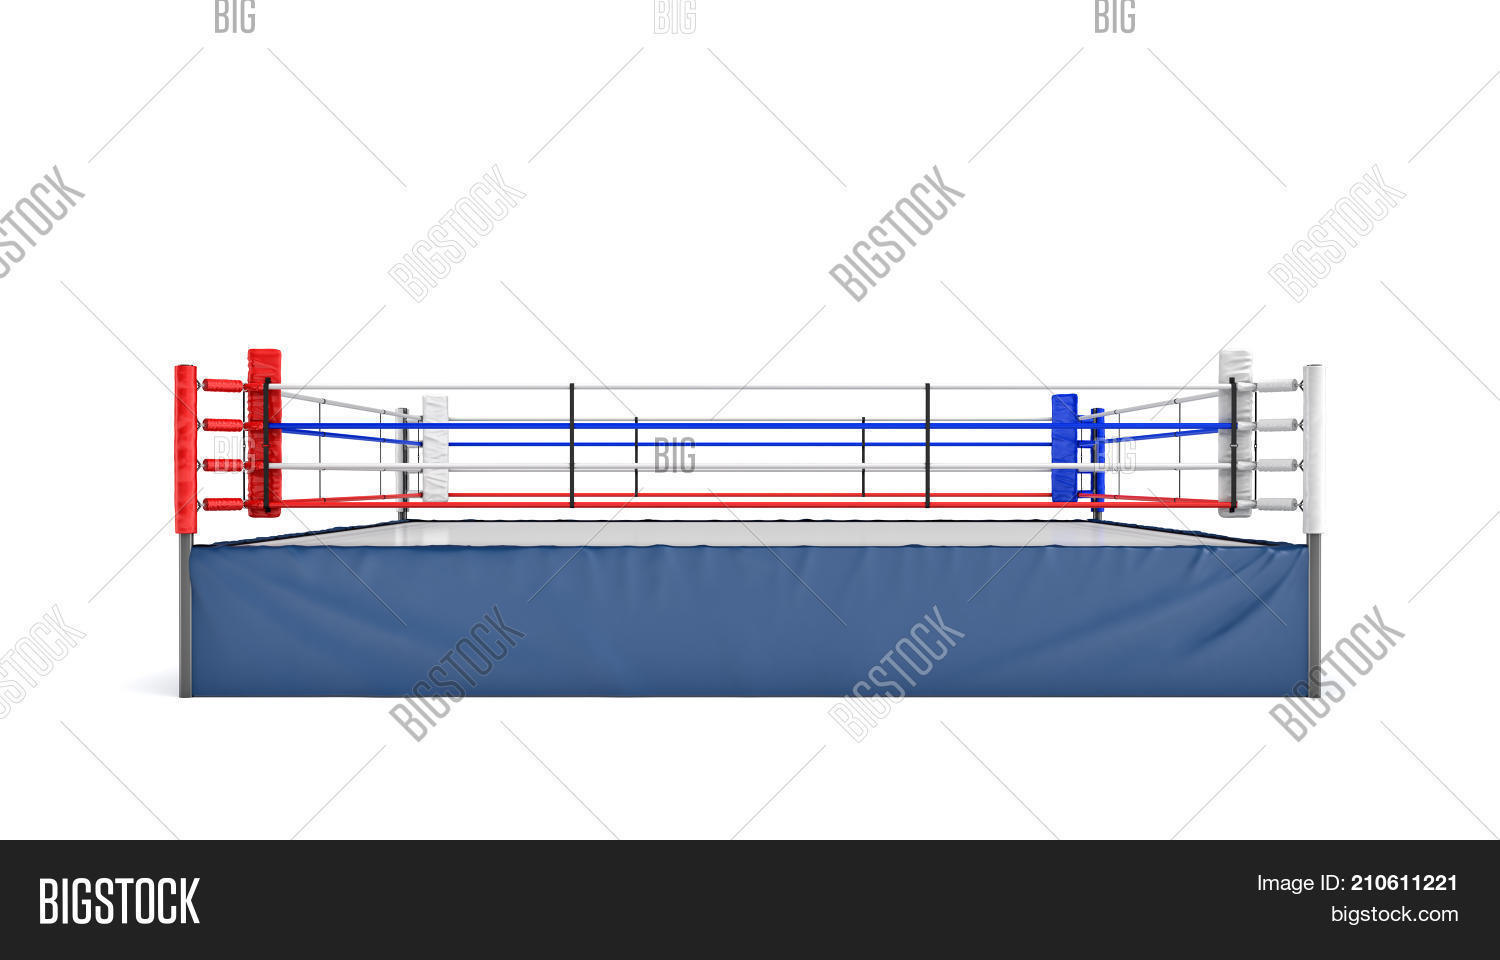 3d rendering empty image photo free trial bigstock 3d rendering of an empty boxing ring in front view isolated on white background professional ccuart Images